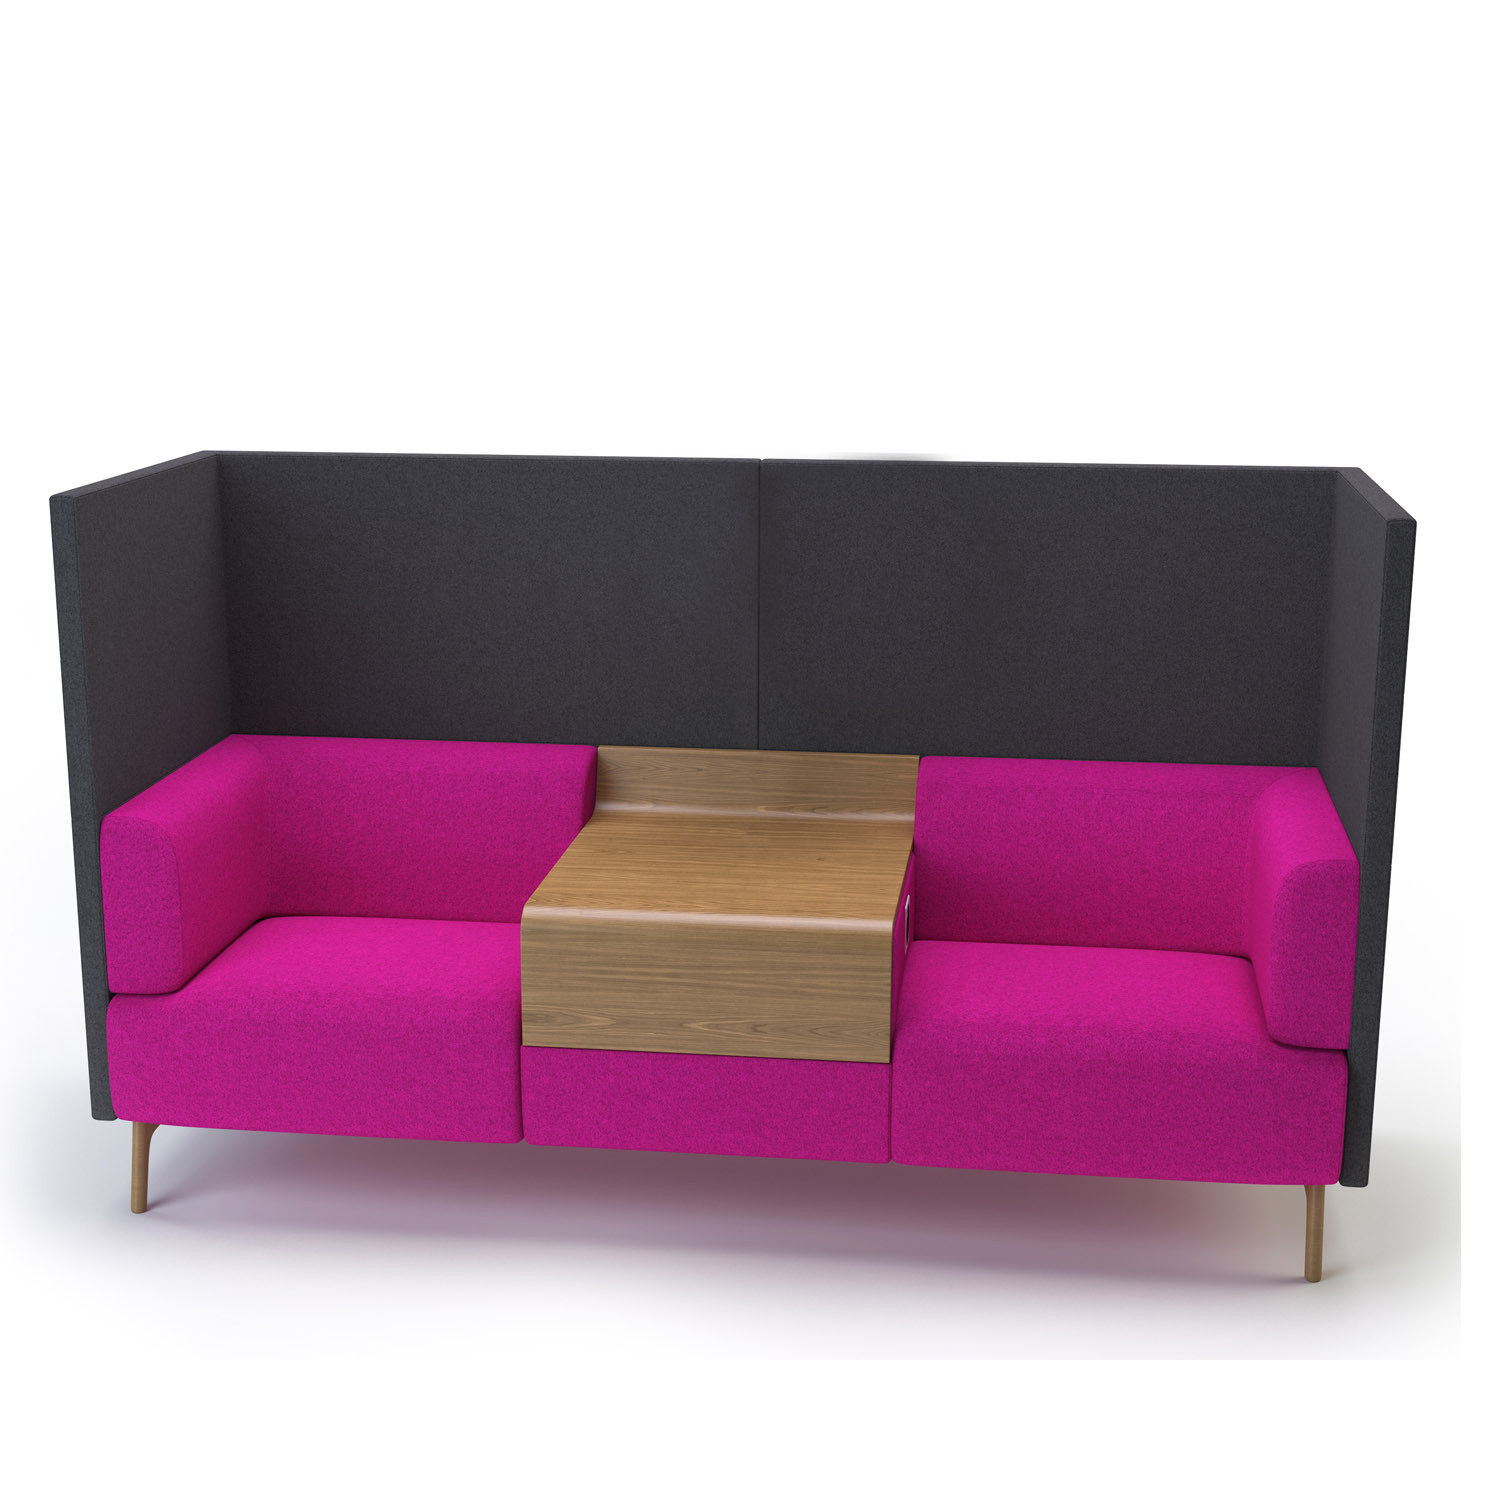 Tryst HB Sofa with integrated table